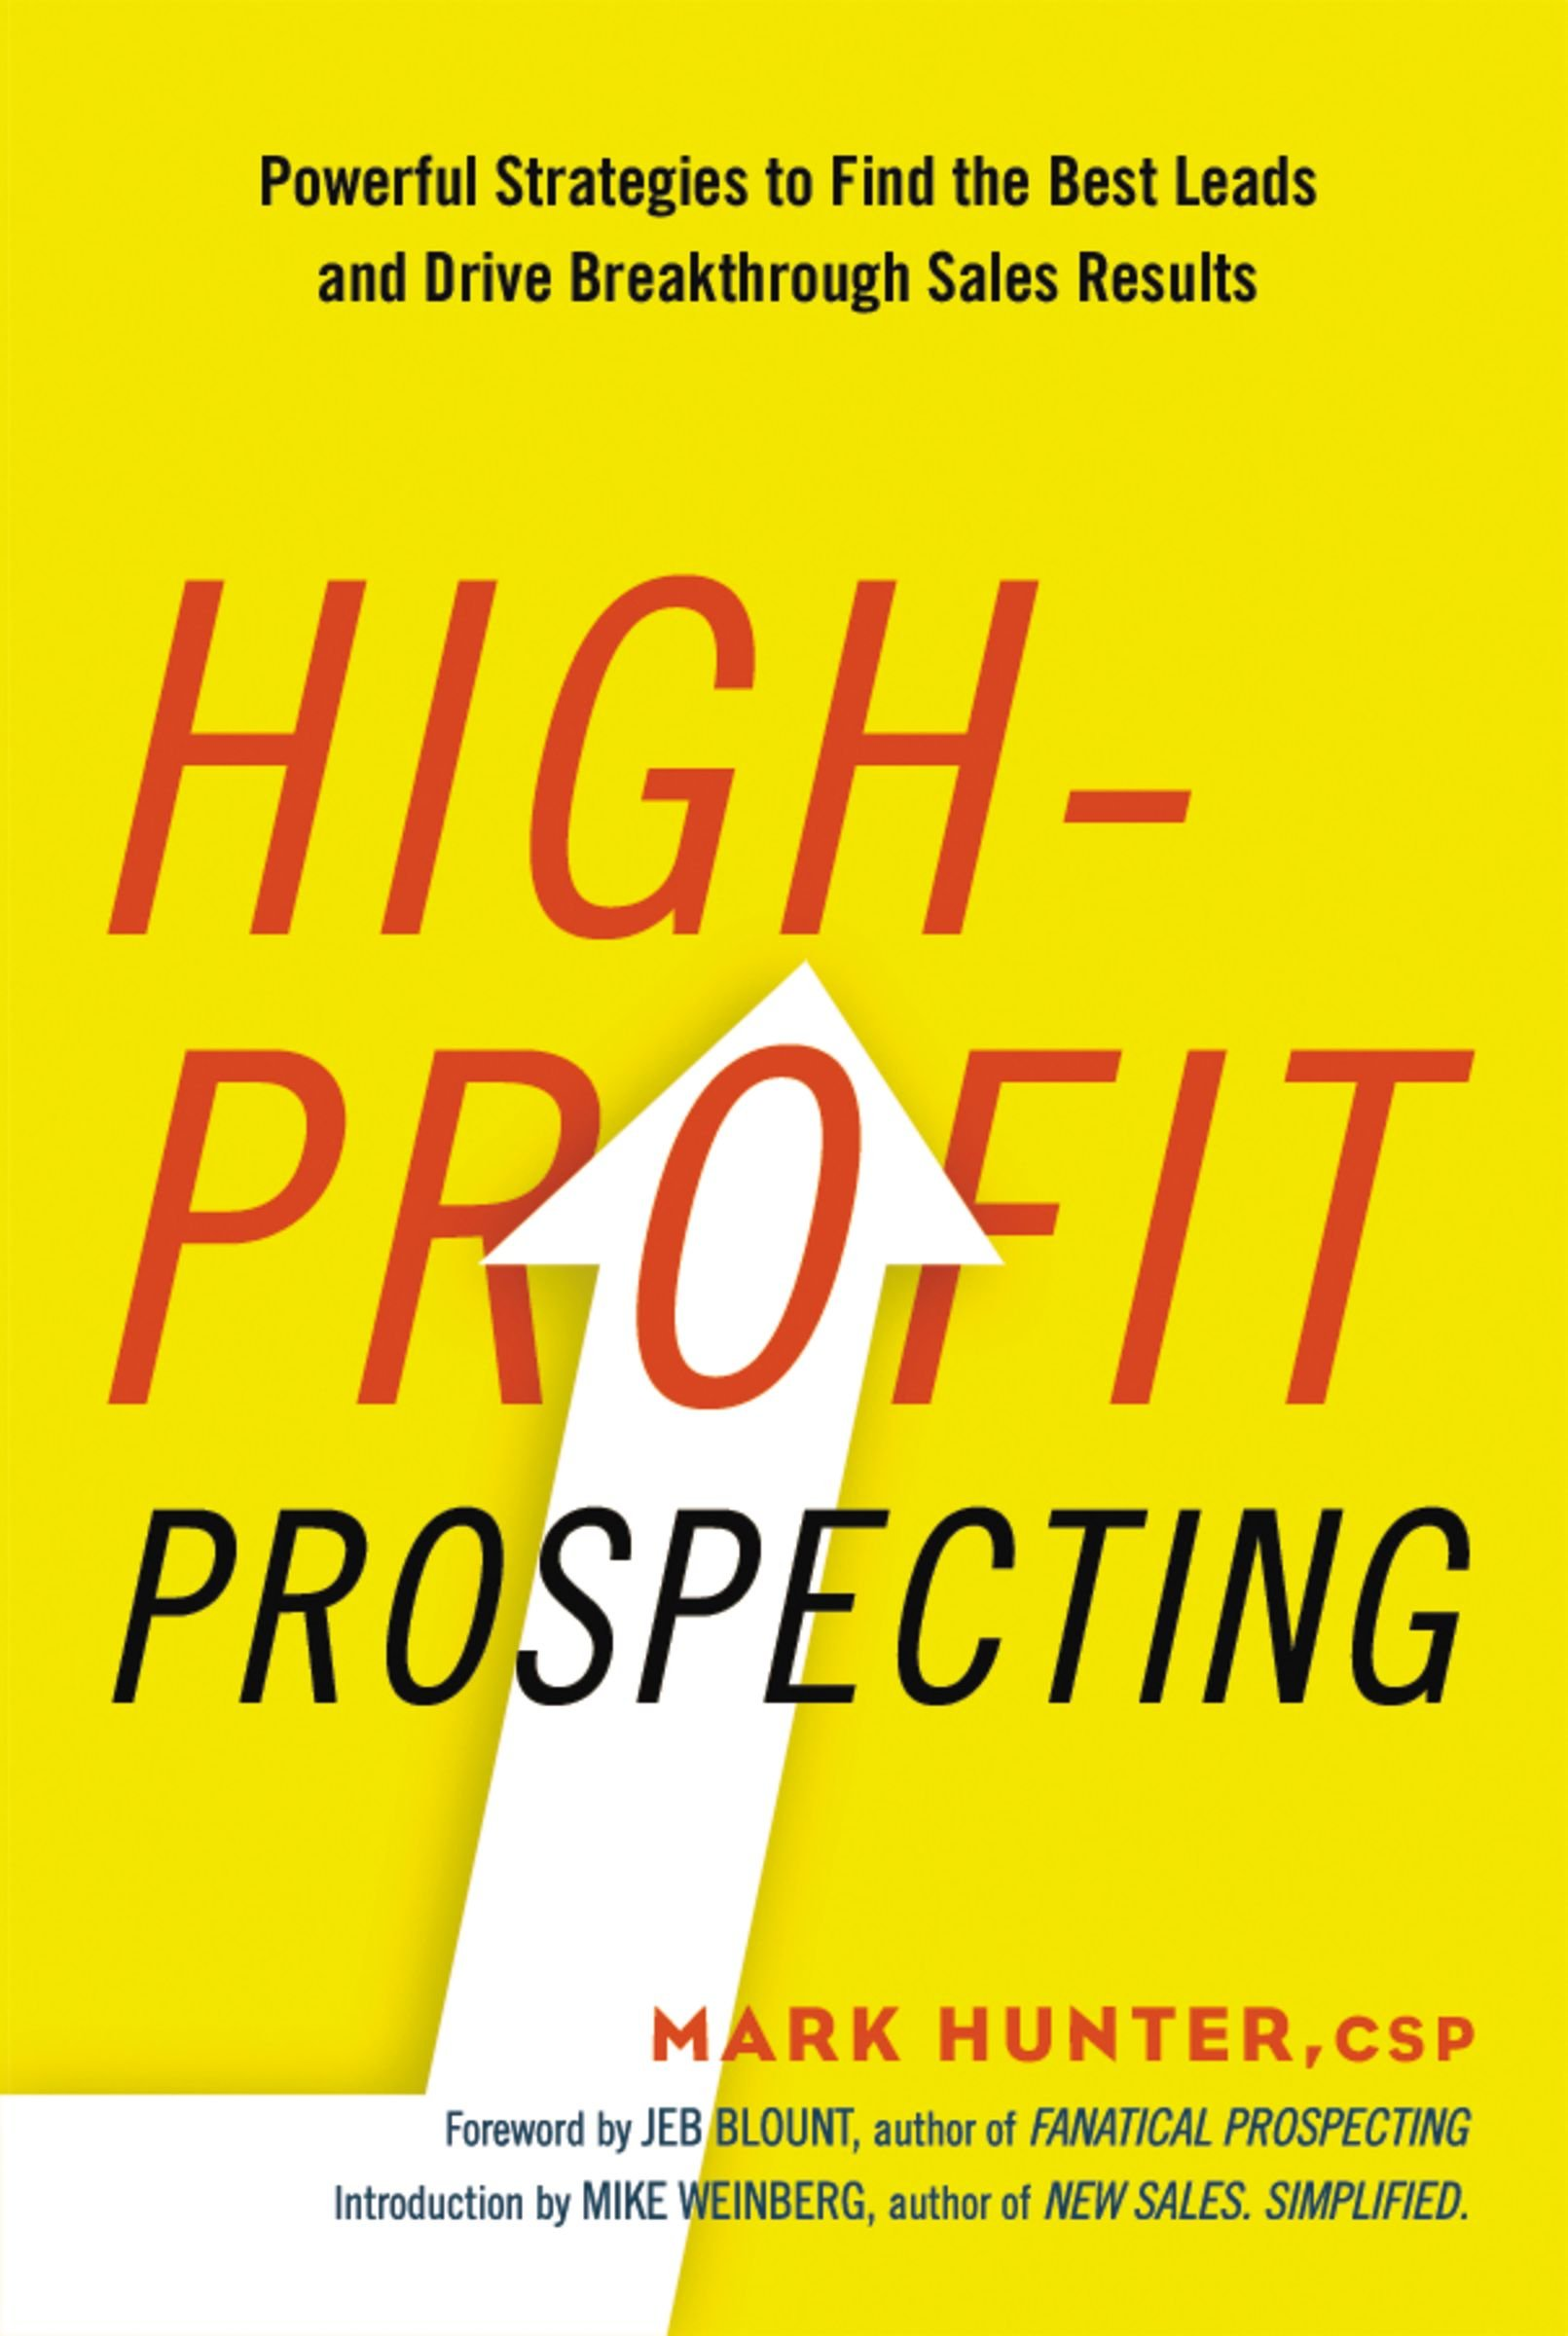 High profit prospecting guide for business owners